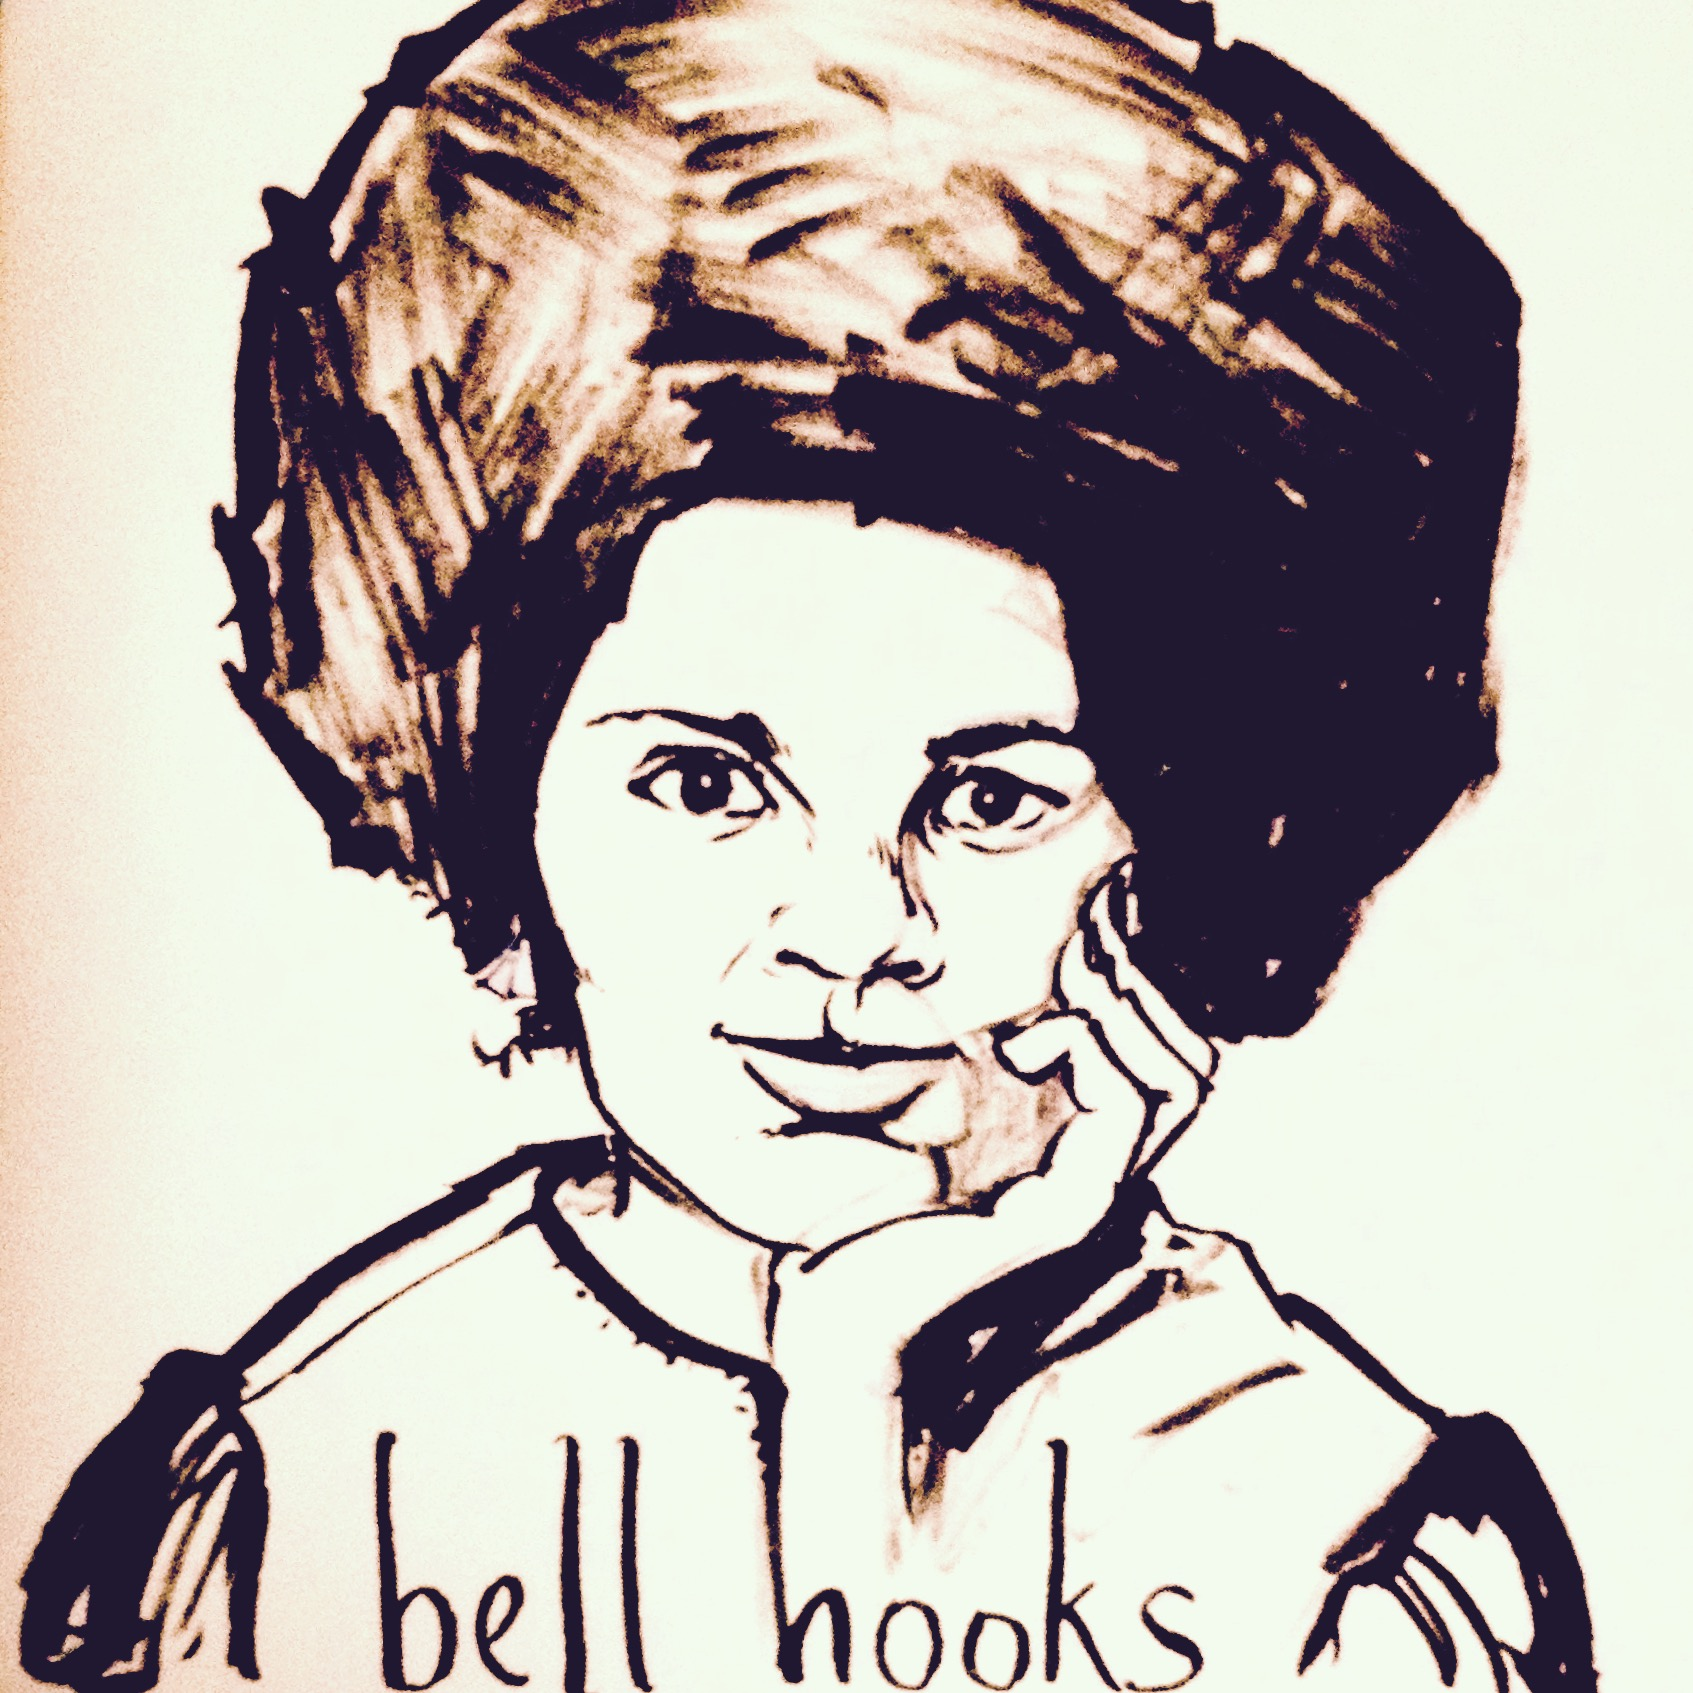 001 Bell Hooks Essays Essay Example Best Keeping Close To Home Patriarchy Feminism Full